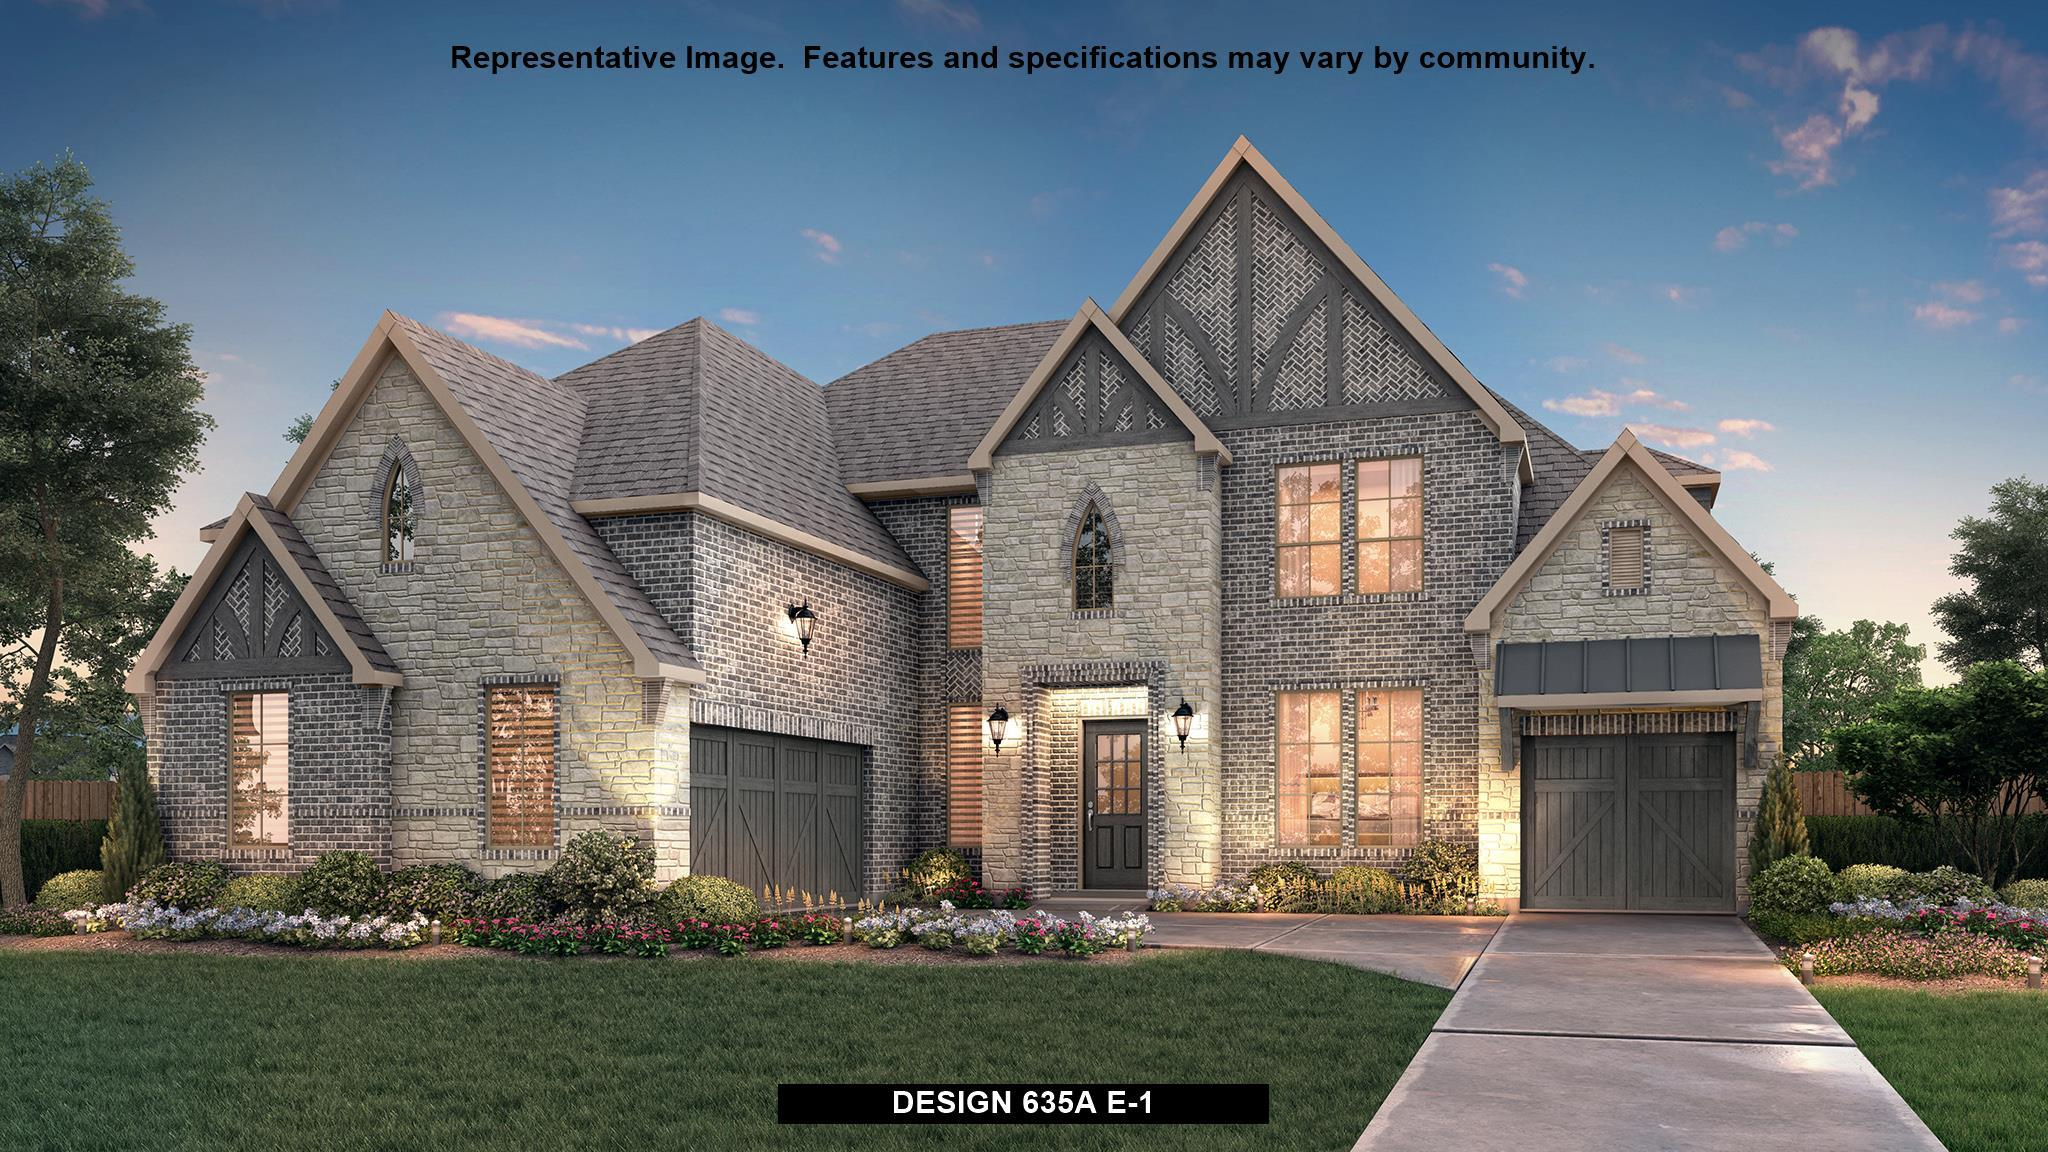 Single Family for Active at Walsh 70' - 635a 13752 Parkline Way Aledo, Texas 76008 United States